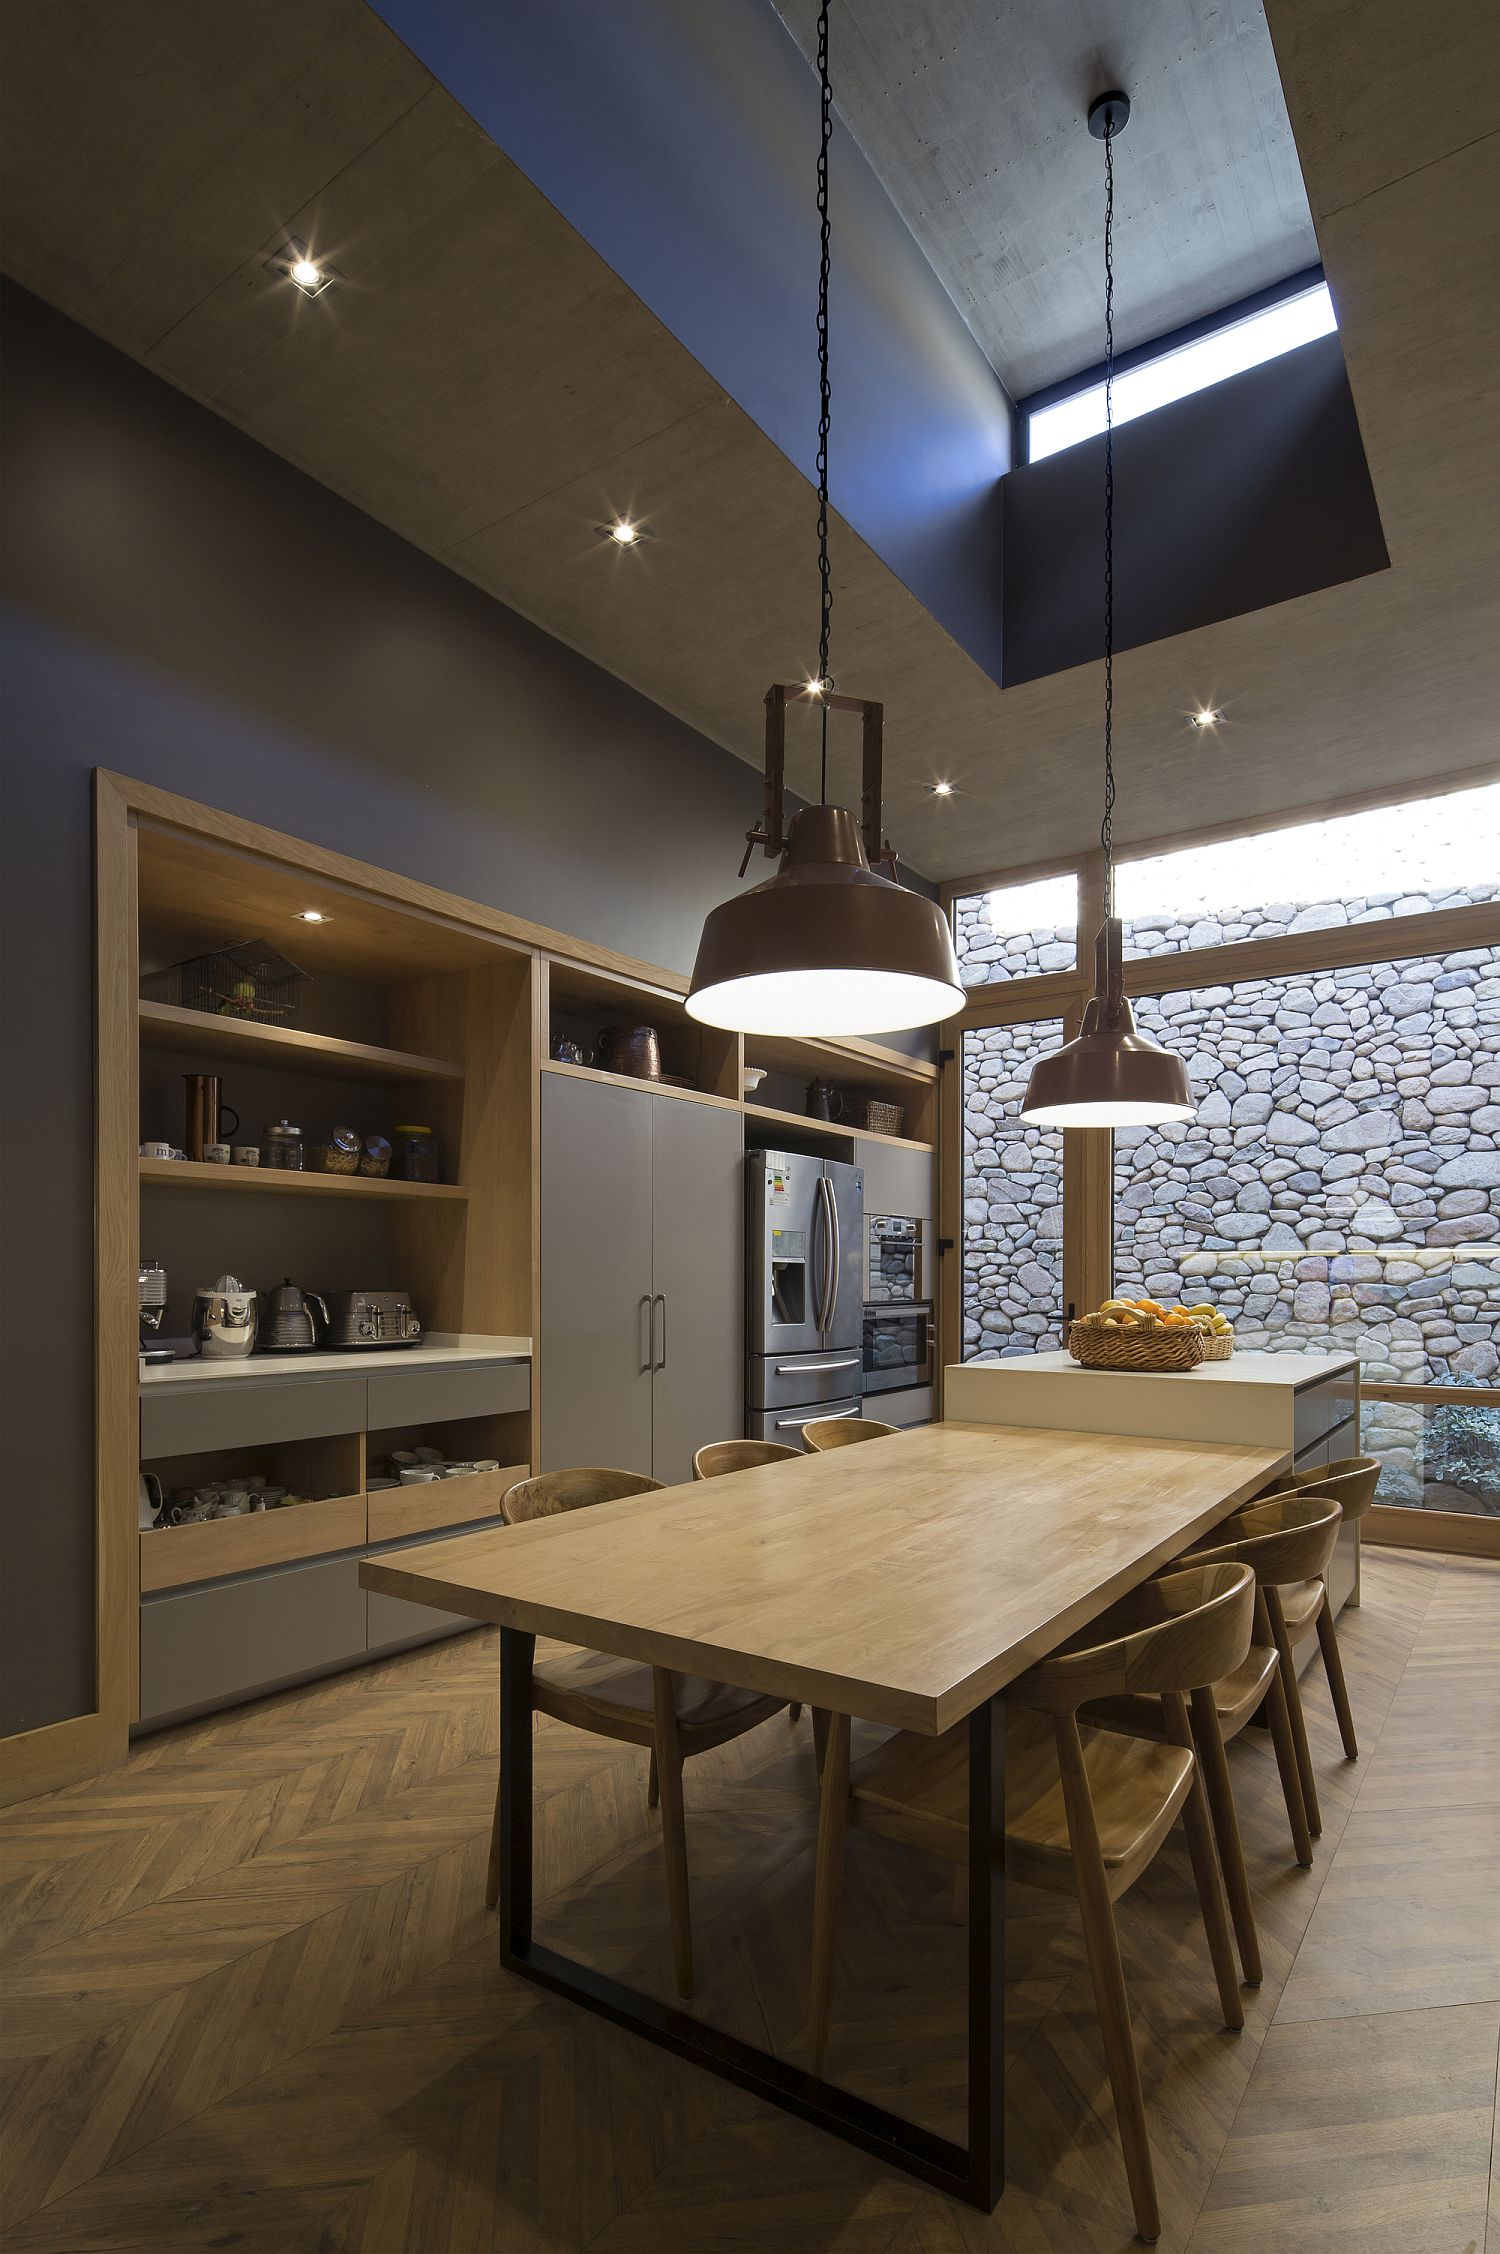 Pendant lights hanging from the double-height dining area and kitchen